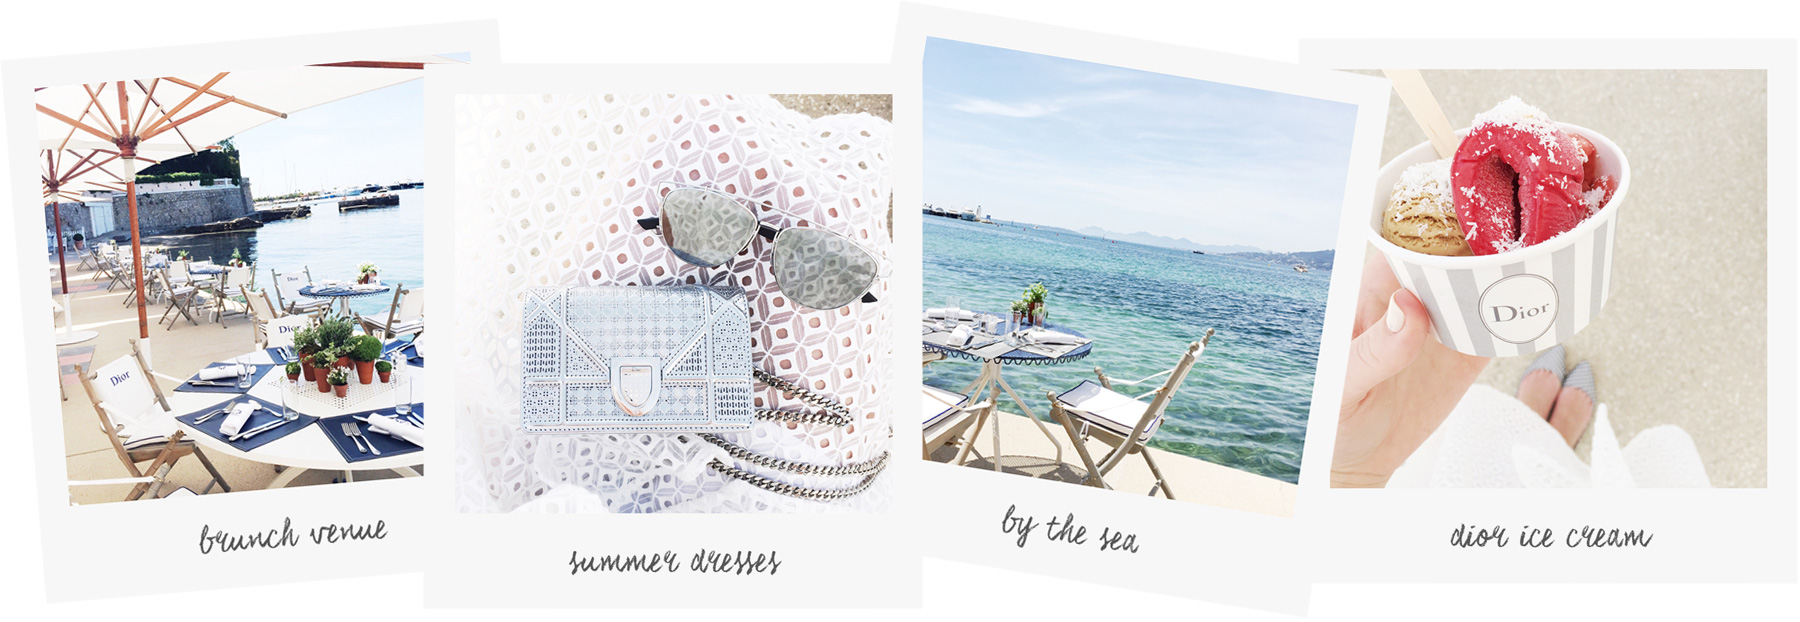 Dior Cruise in Cannes by Carin Olsson